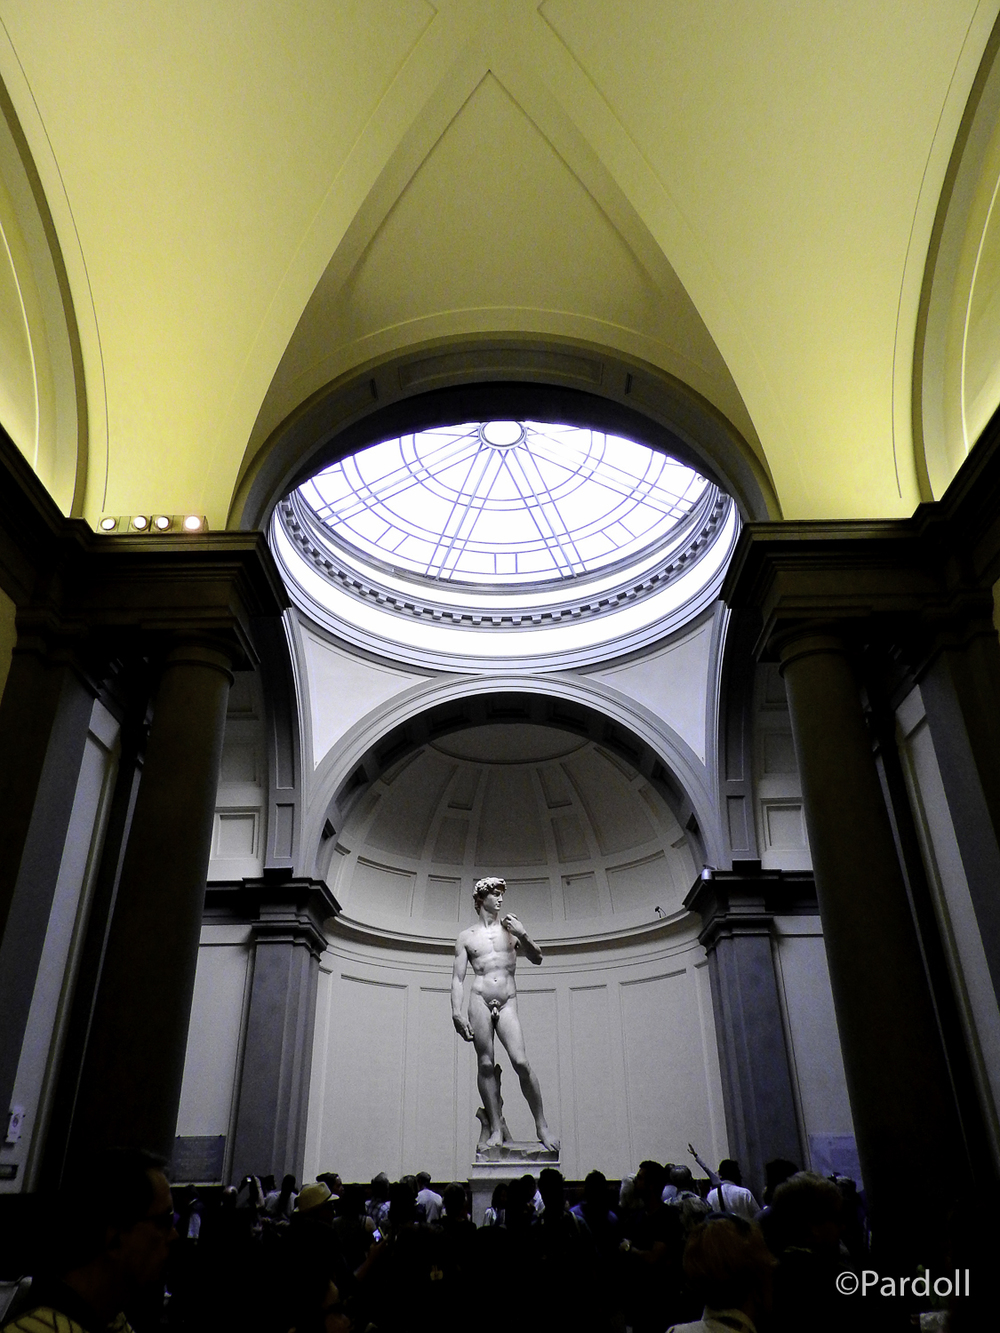 David by Michelangelo.  Nice perspective using people to show just how large this statue is.